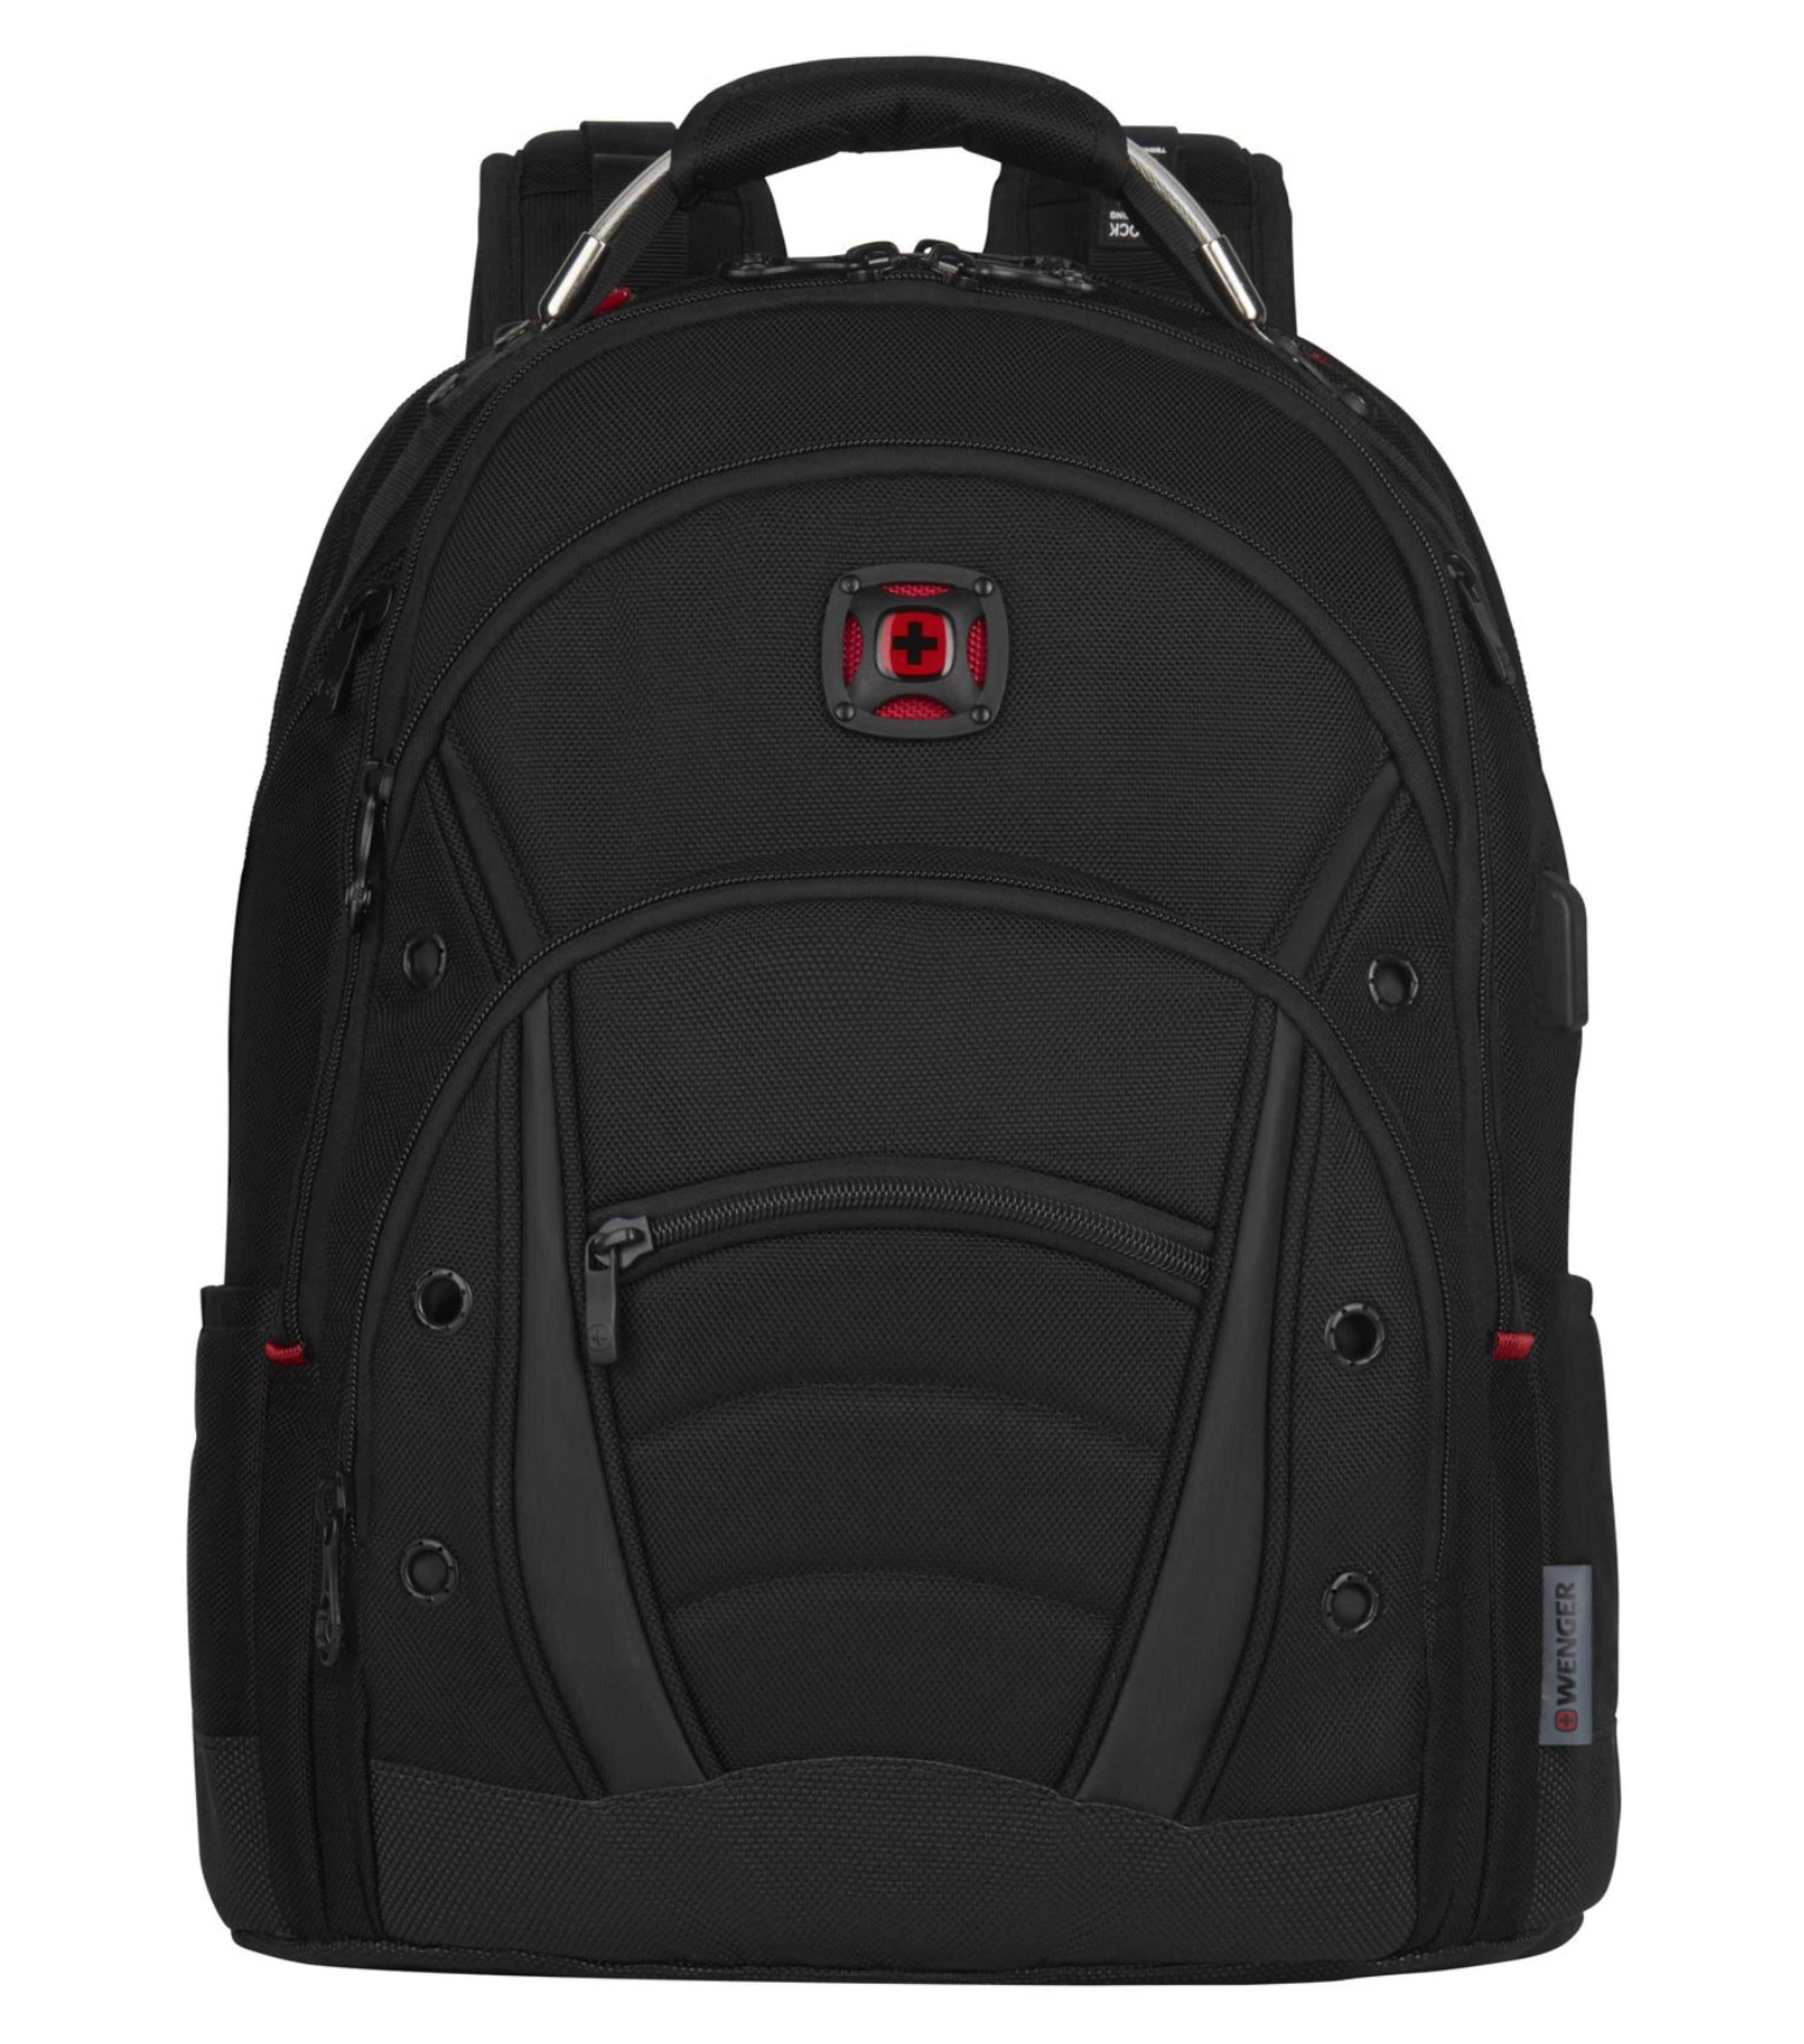 Wenger Synergy Deluxe 16 Quot Laptop Backpack With Tablet